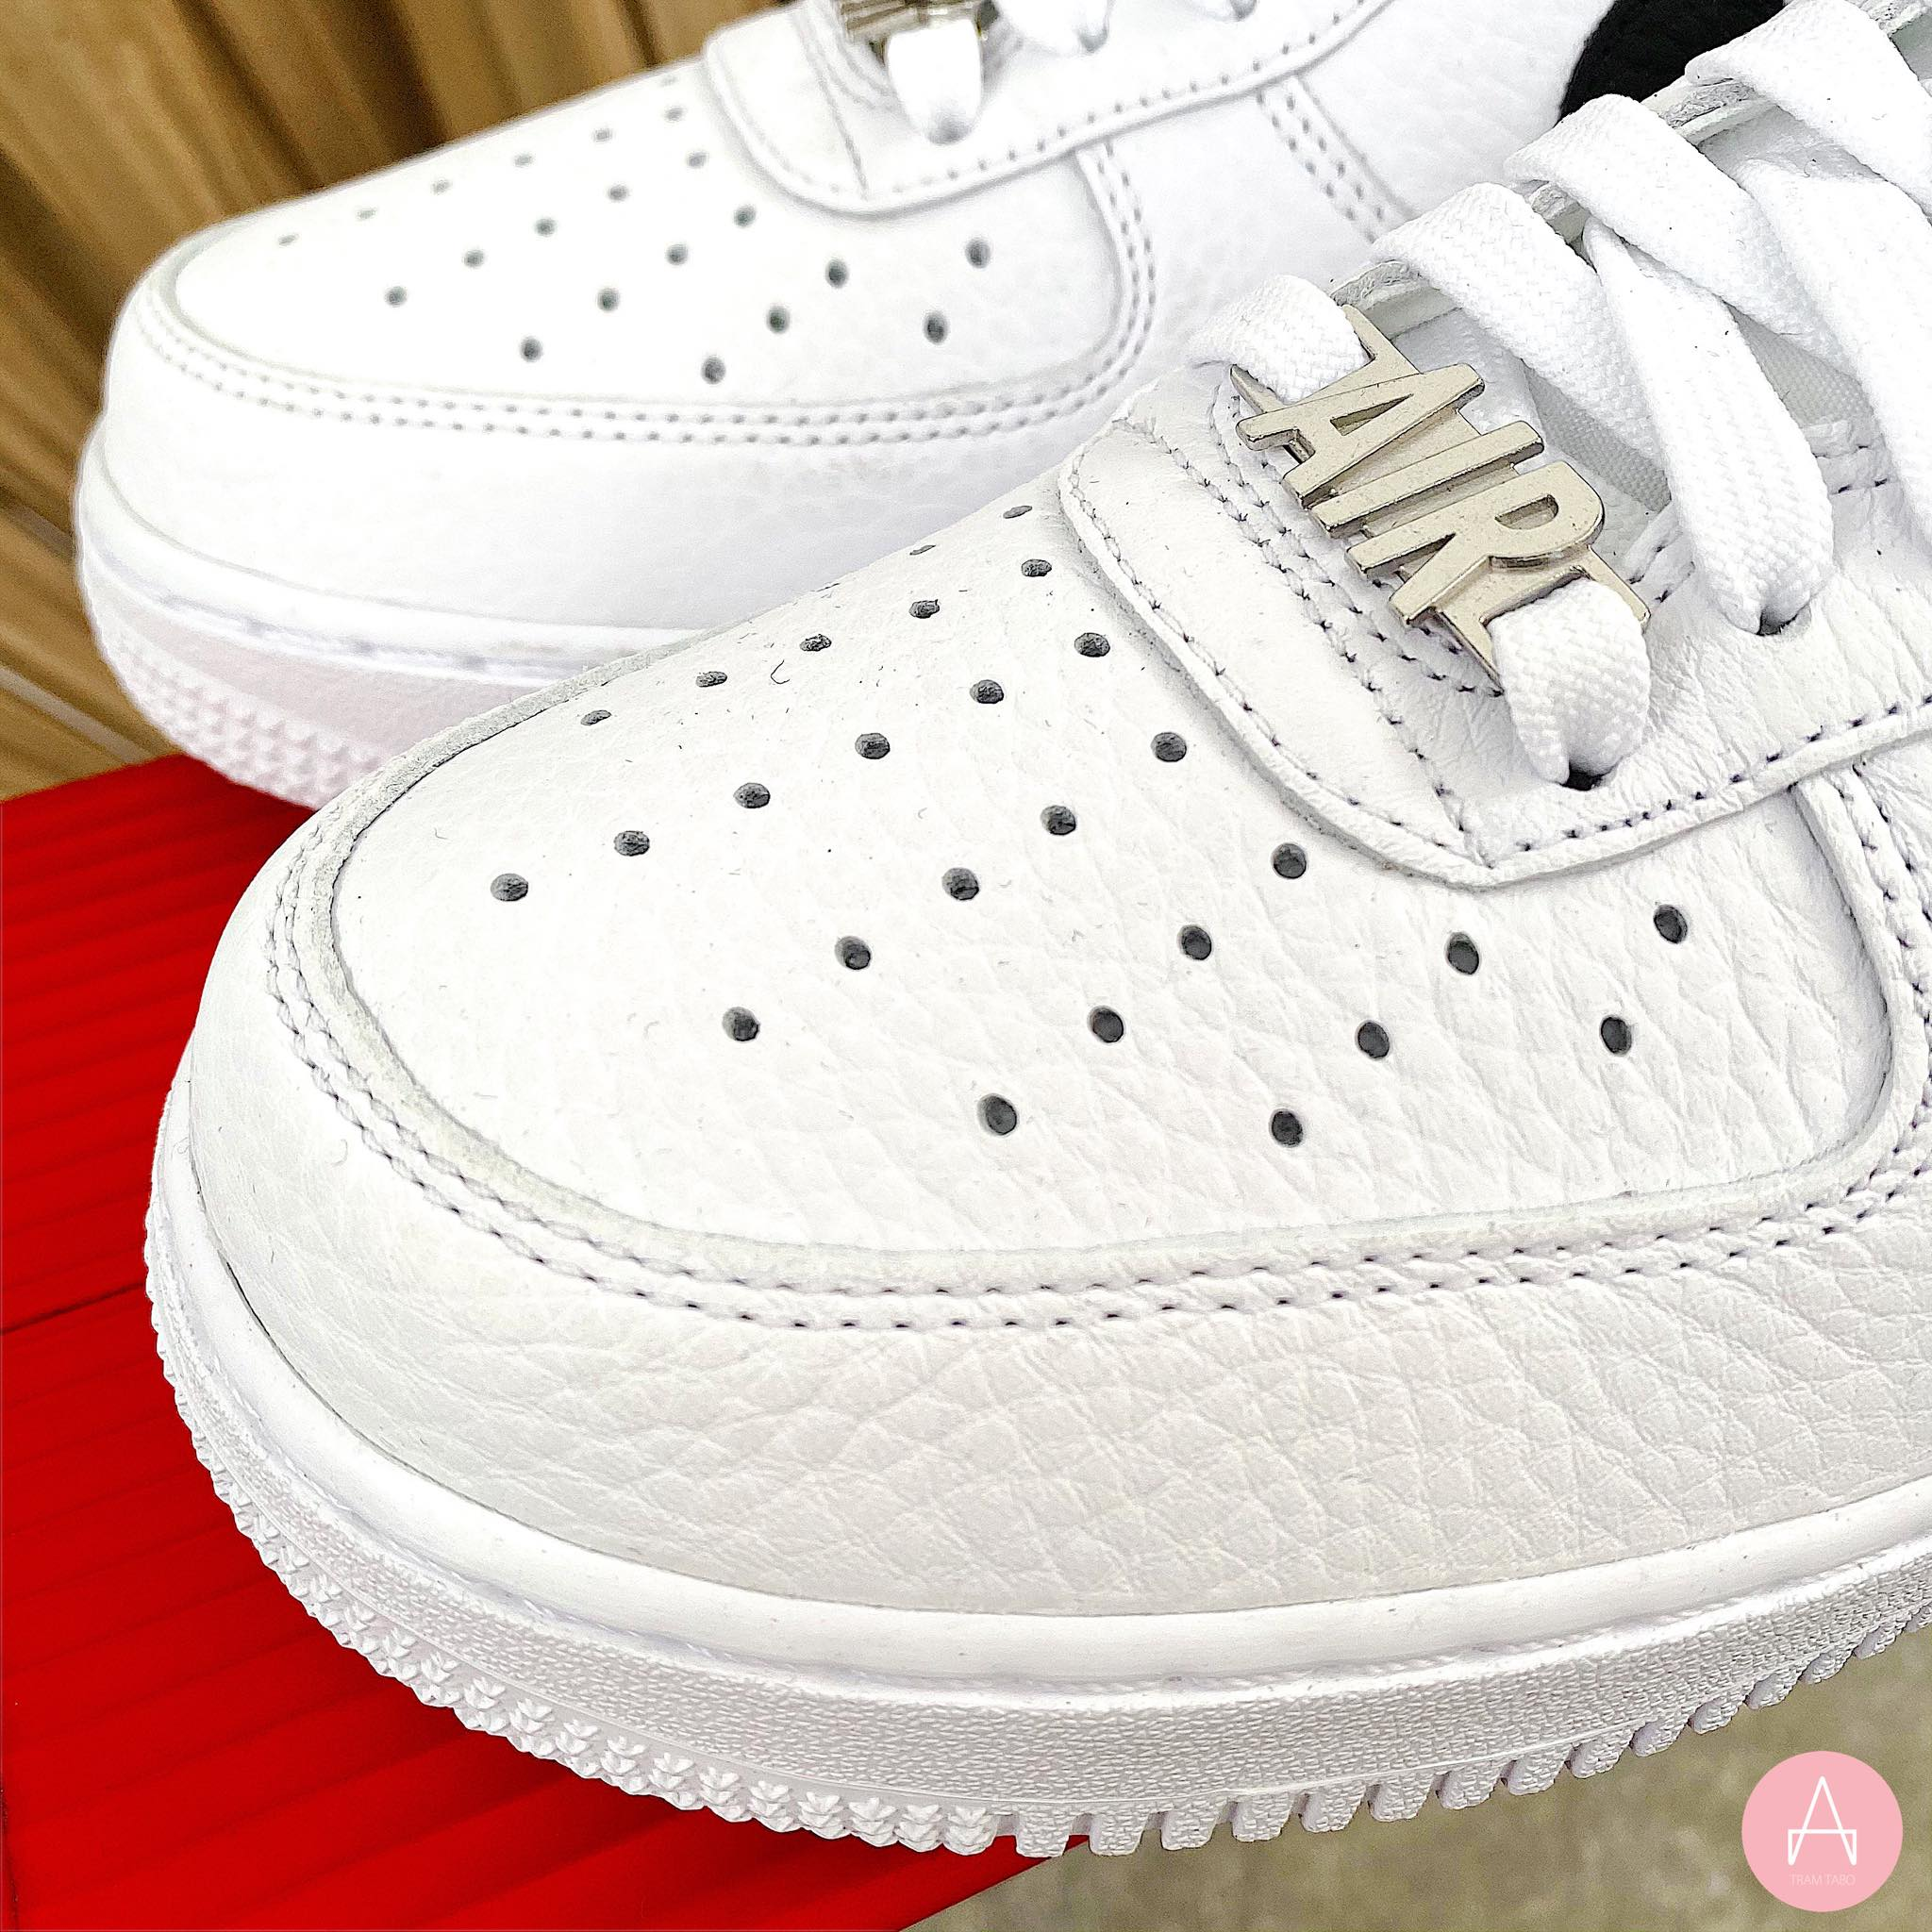 [CW6558-100] M NIKE AIR FORCE 1 LOW ZIP SWOOSH WHITE